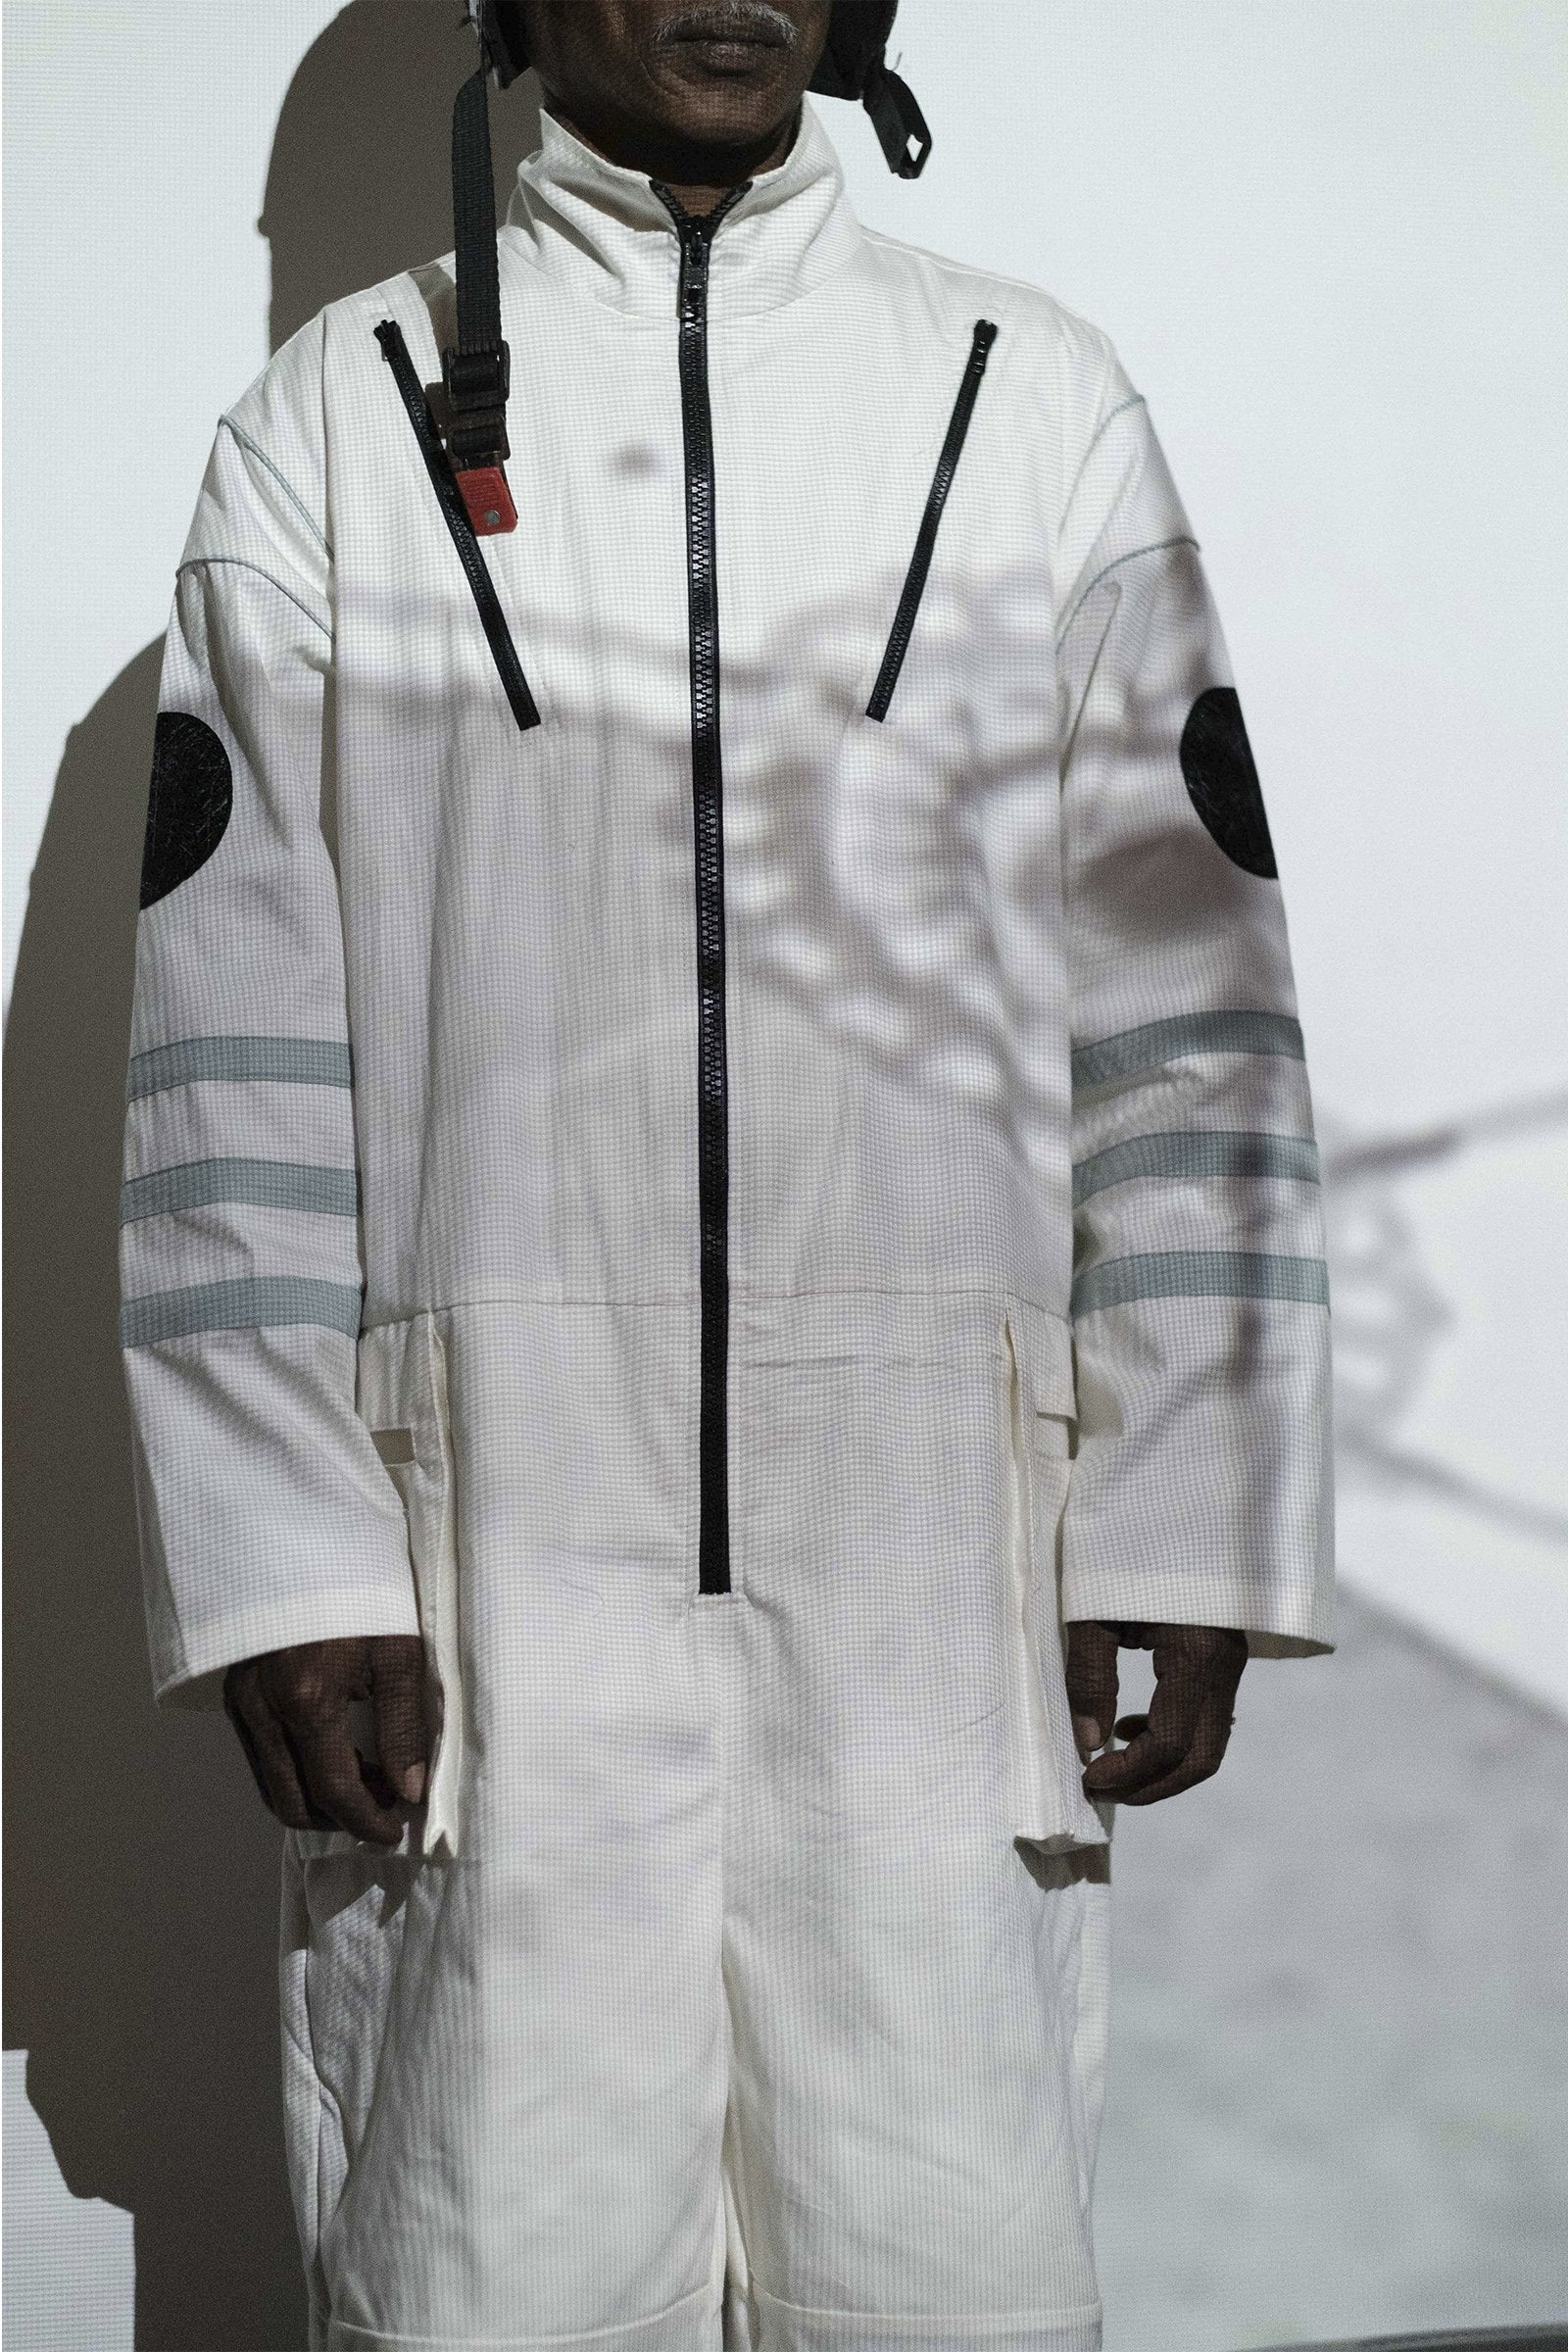 RS SPACESUIT